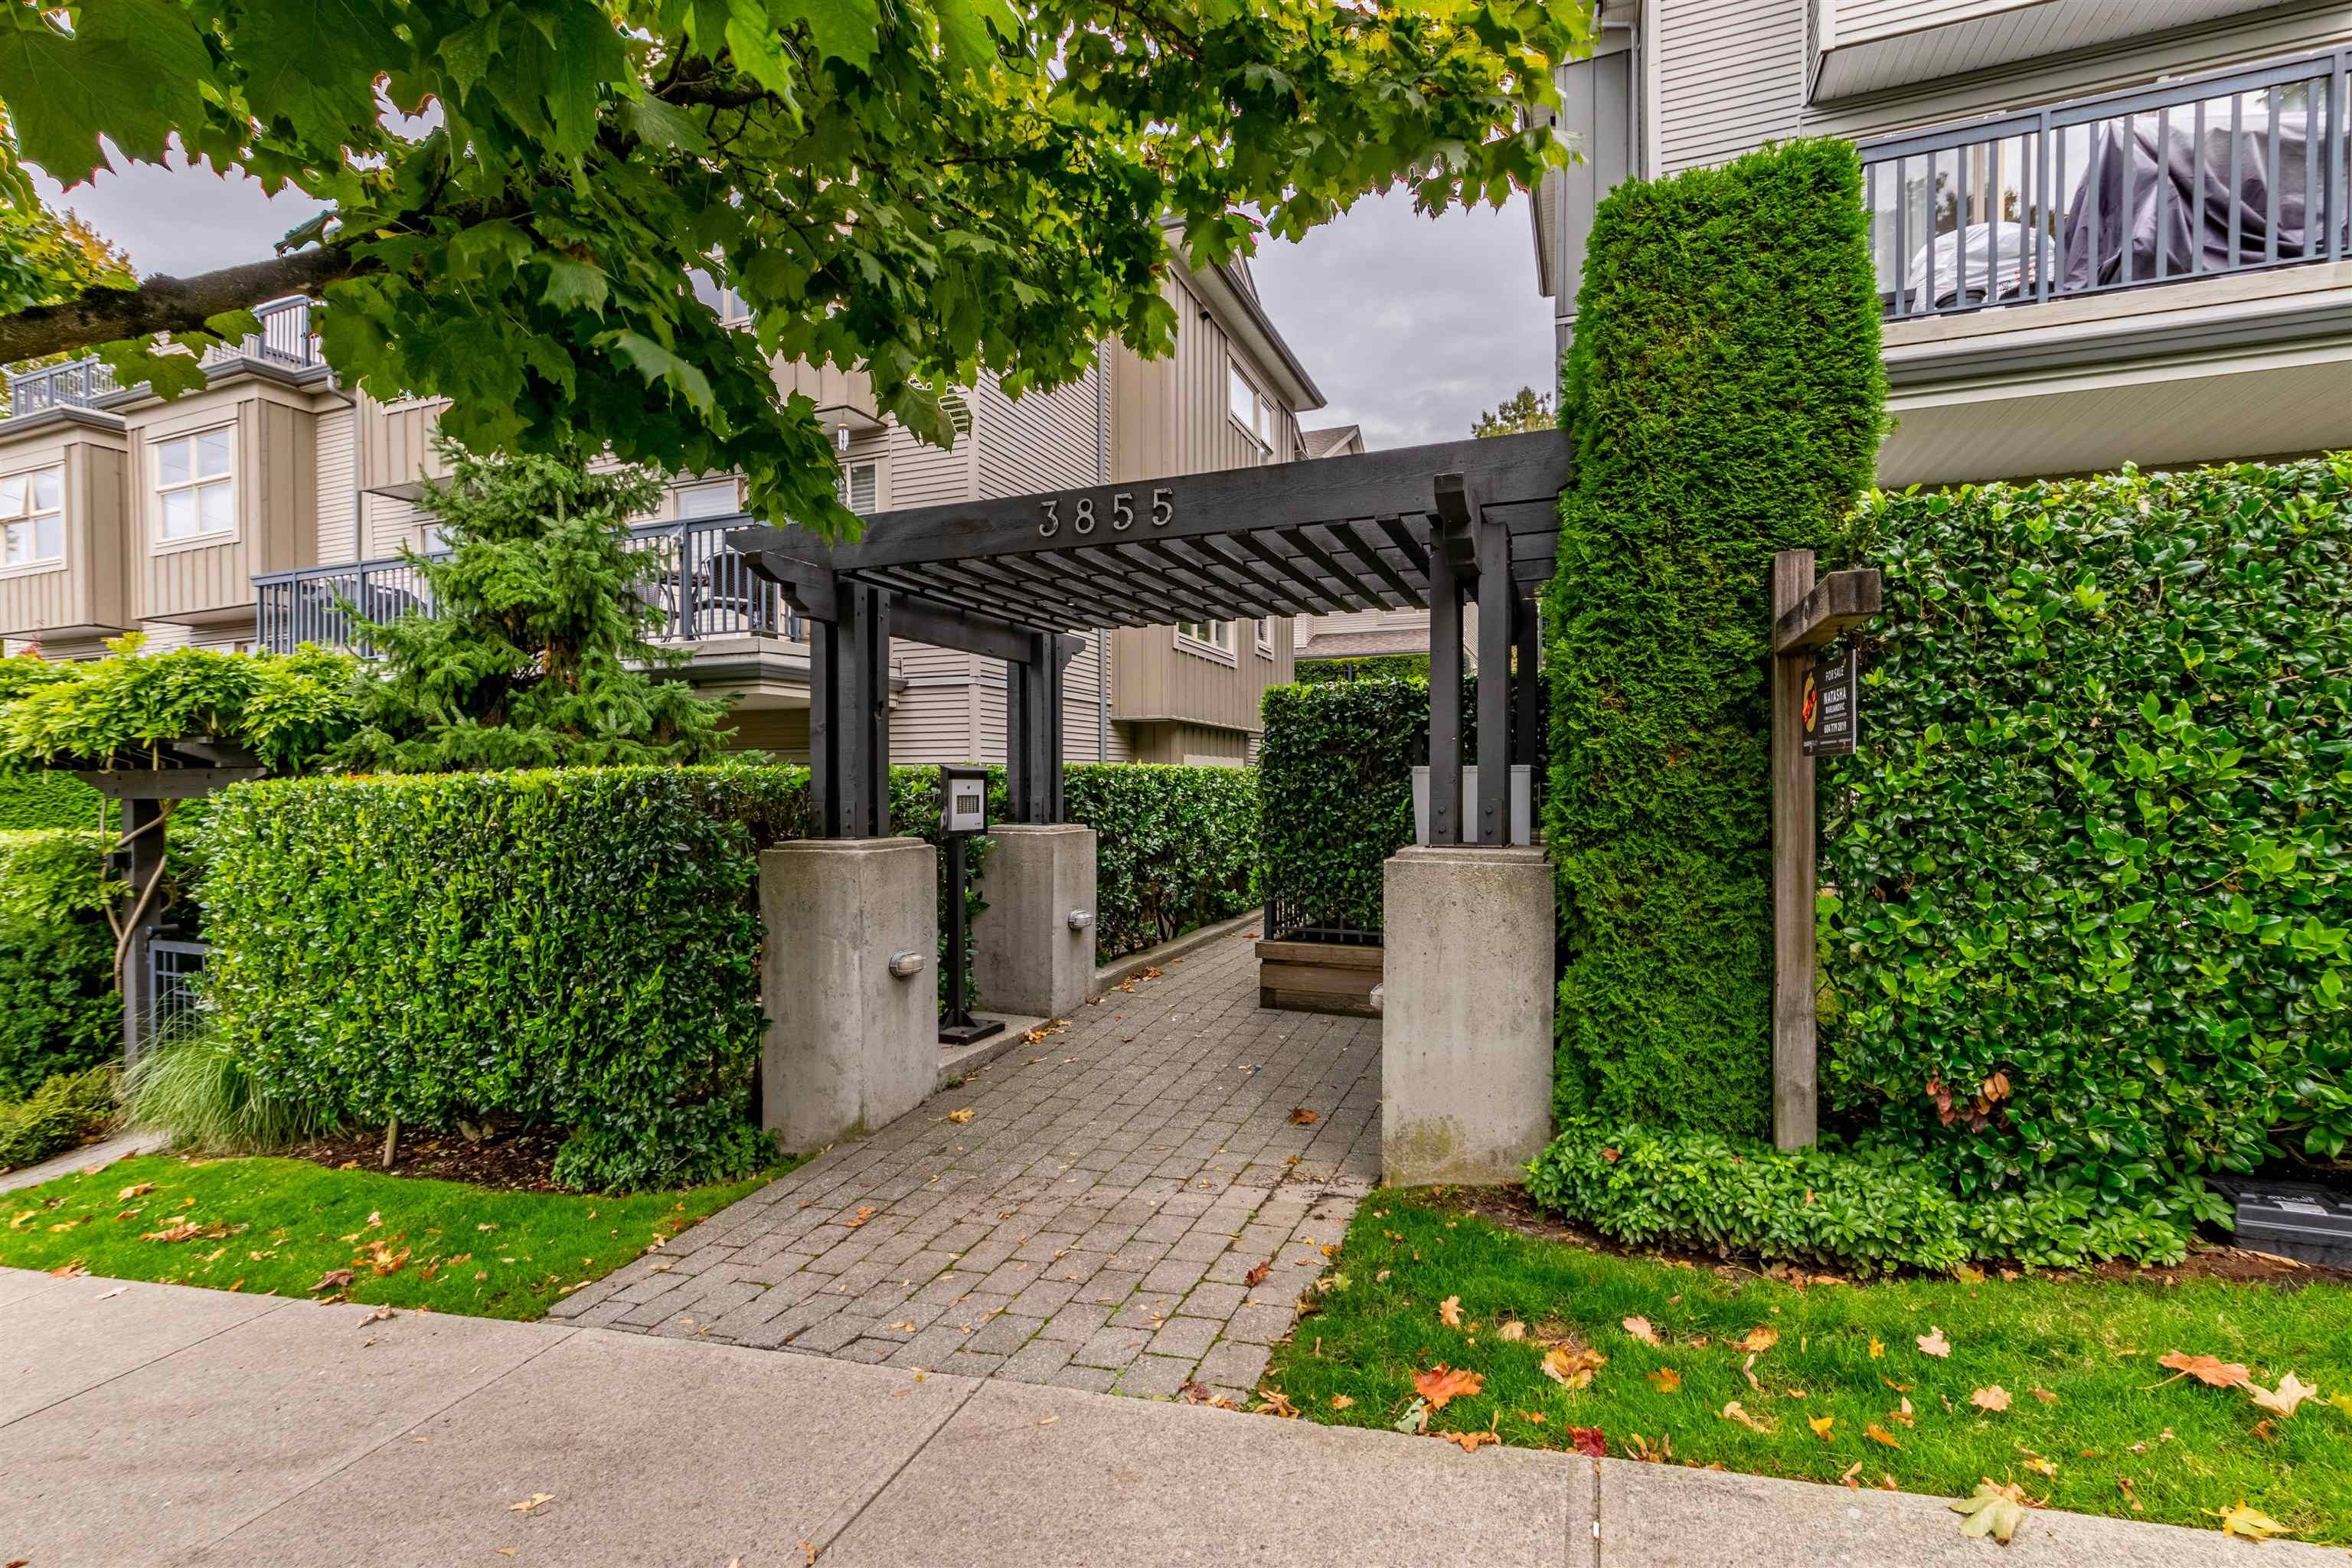 """Main Photo: 3 3855 PENDER Street in Burnaby: Willingdon Heights Townhouse for sale in """"ALTURA"""" (Burnaby North)  : MLS®# R2625365"""